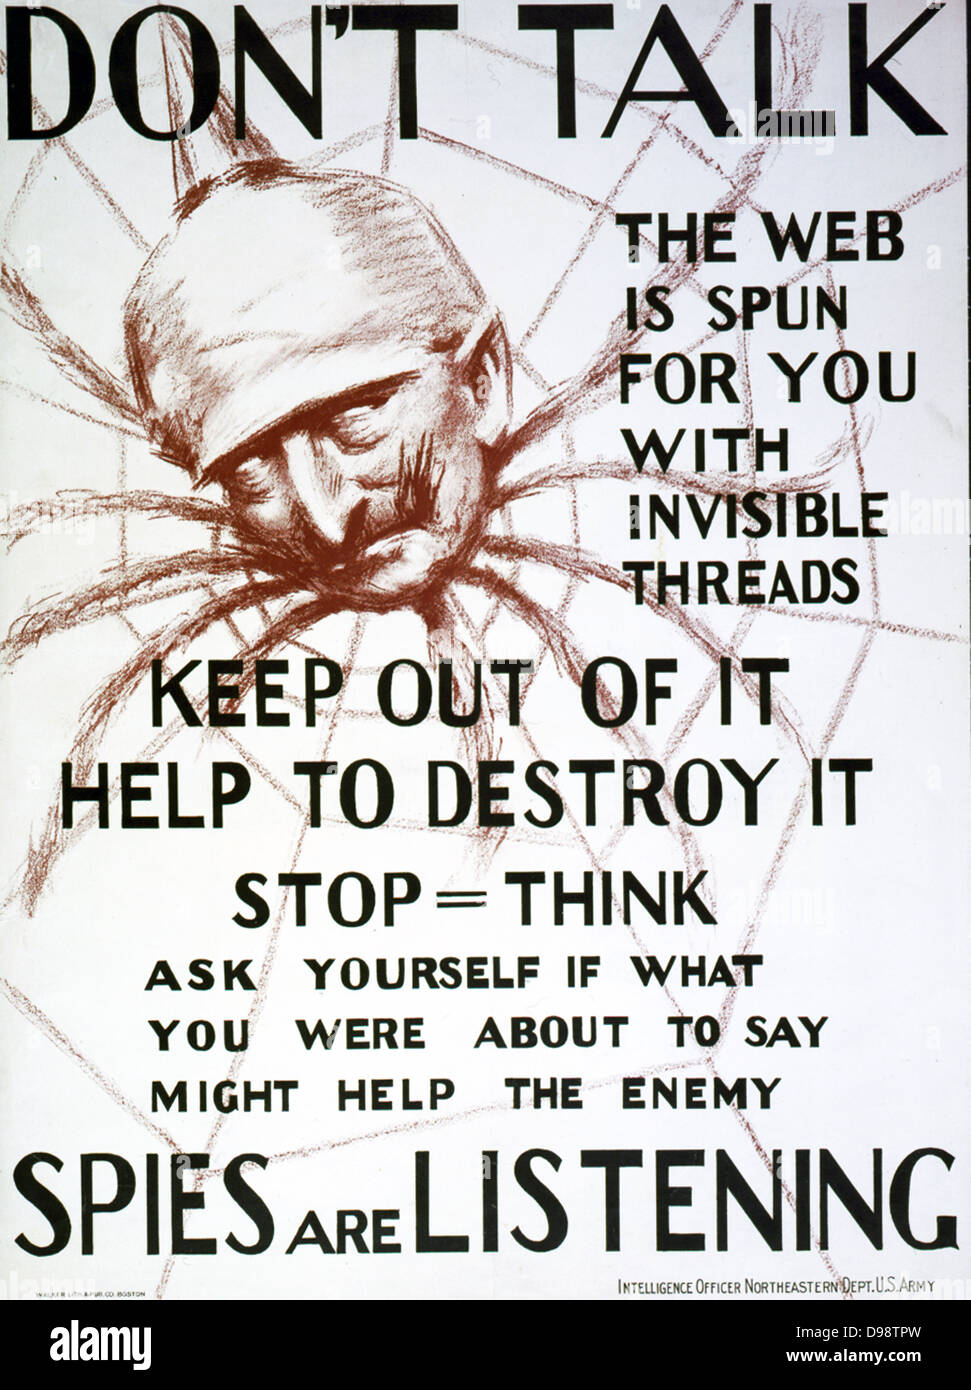 World War I 1914-1918: ' Don't talk, the web is spun for you with invisible threads, keep out of it, help - Stock Image